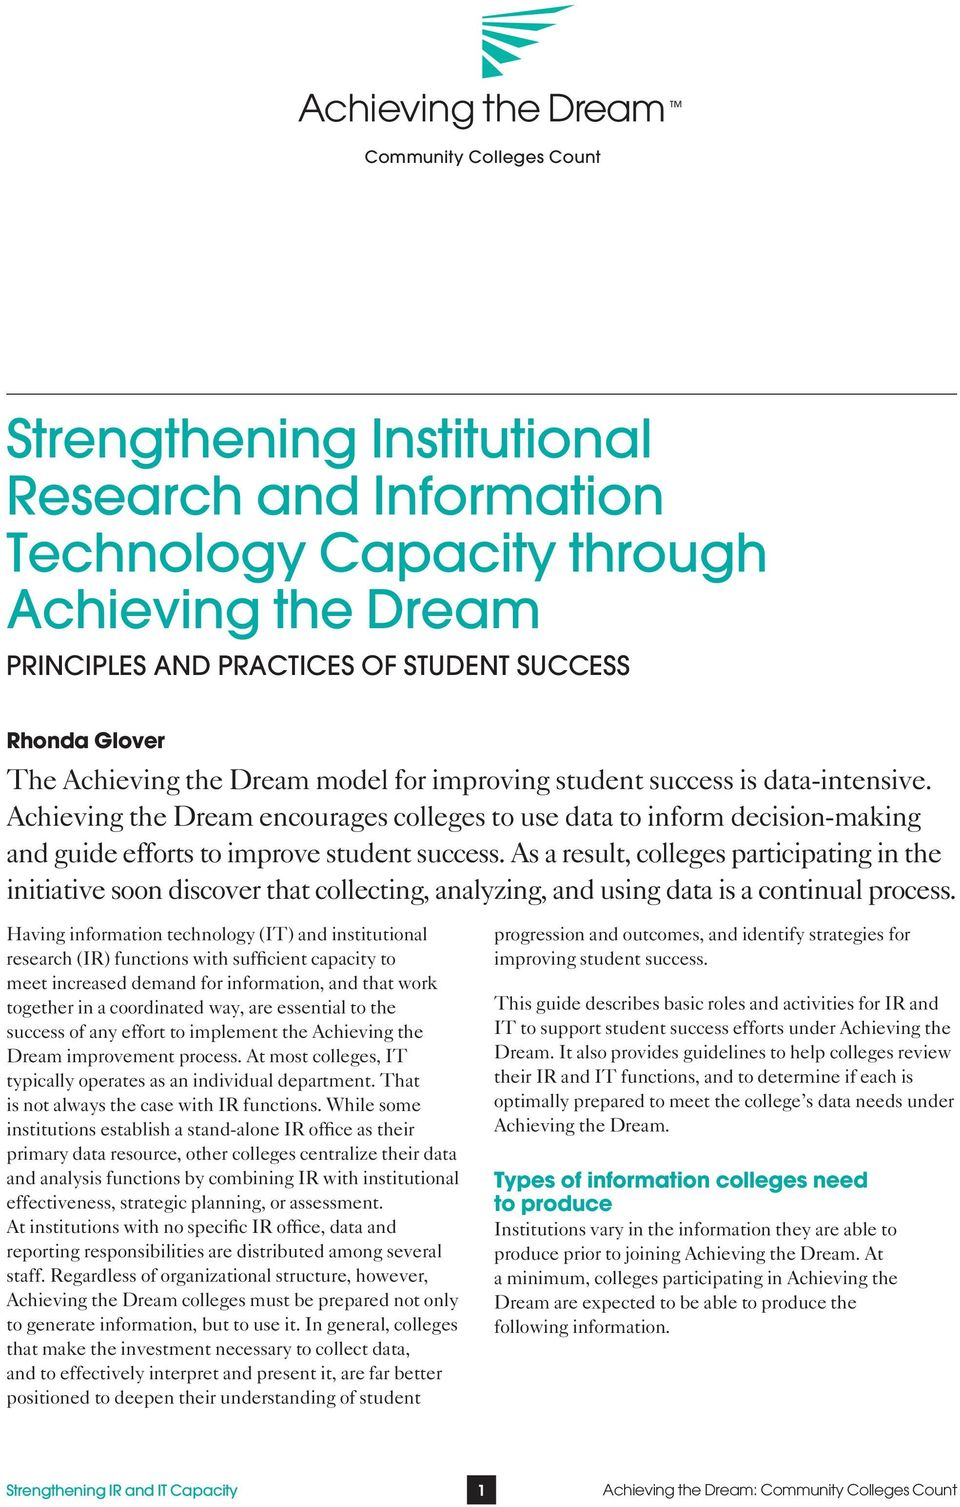 Achieving the Dream encourages colleges to use data to inform decision-making and guide efforts to improve student success.